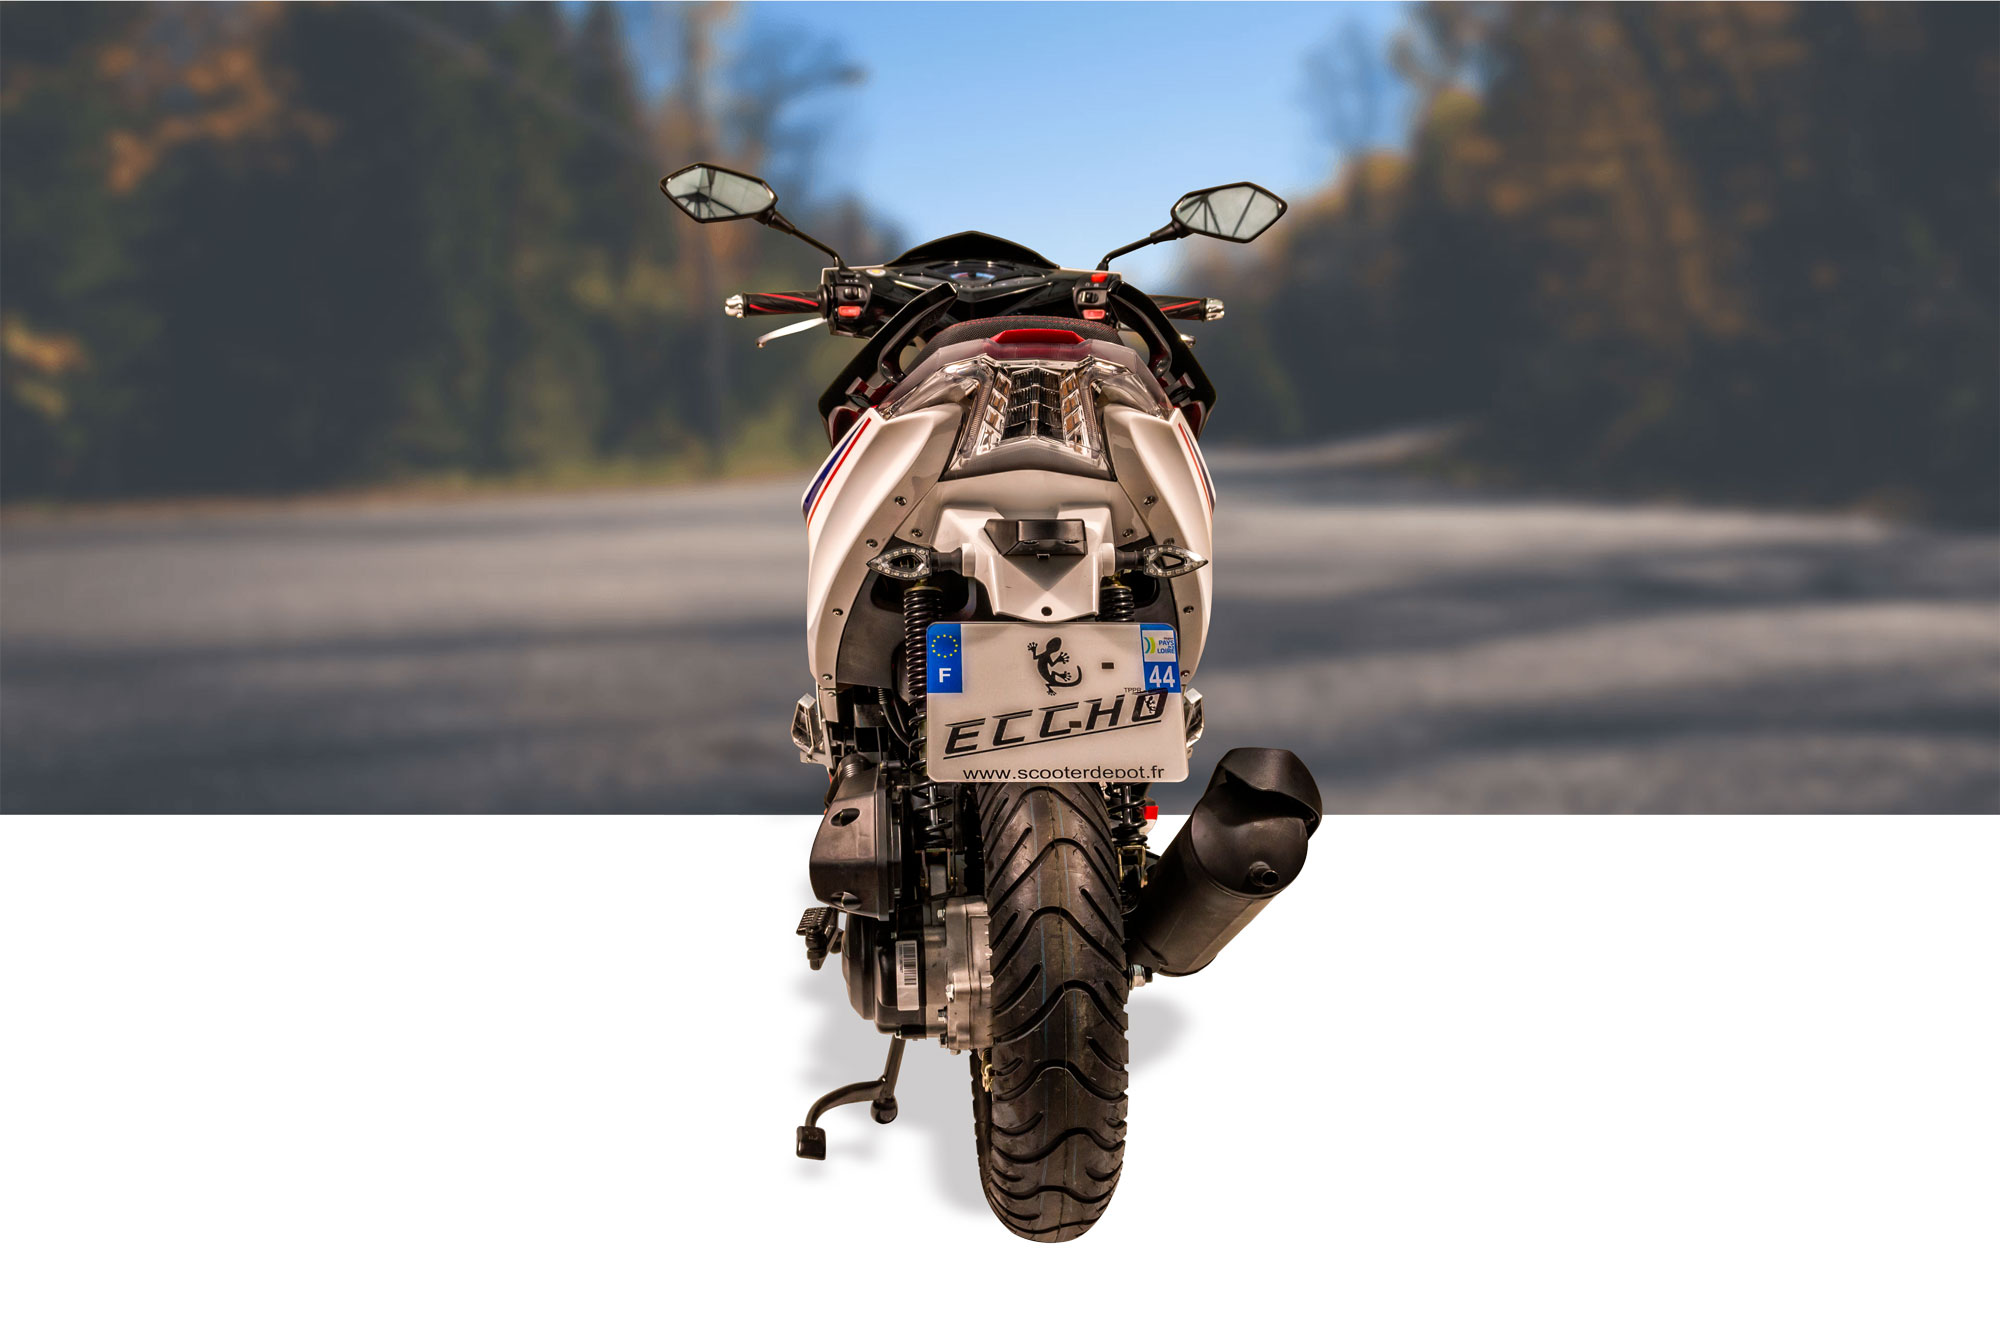 SCOOTER-50-ECCHO-FAST-EFI-06